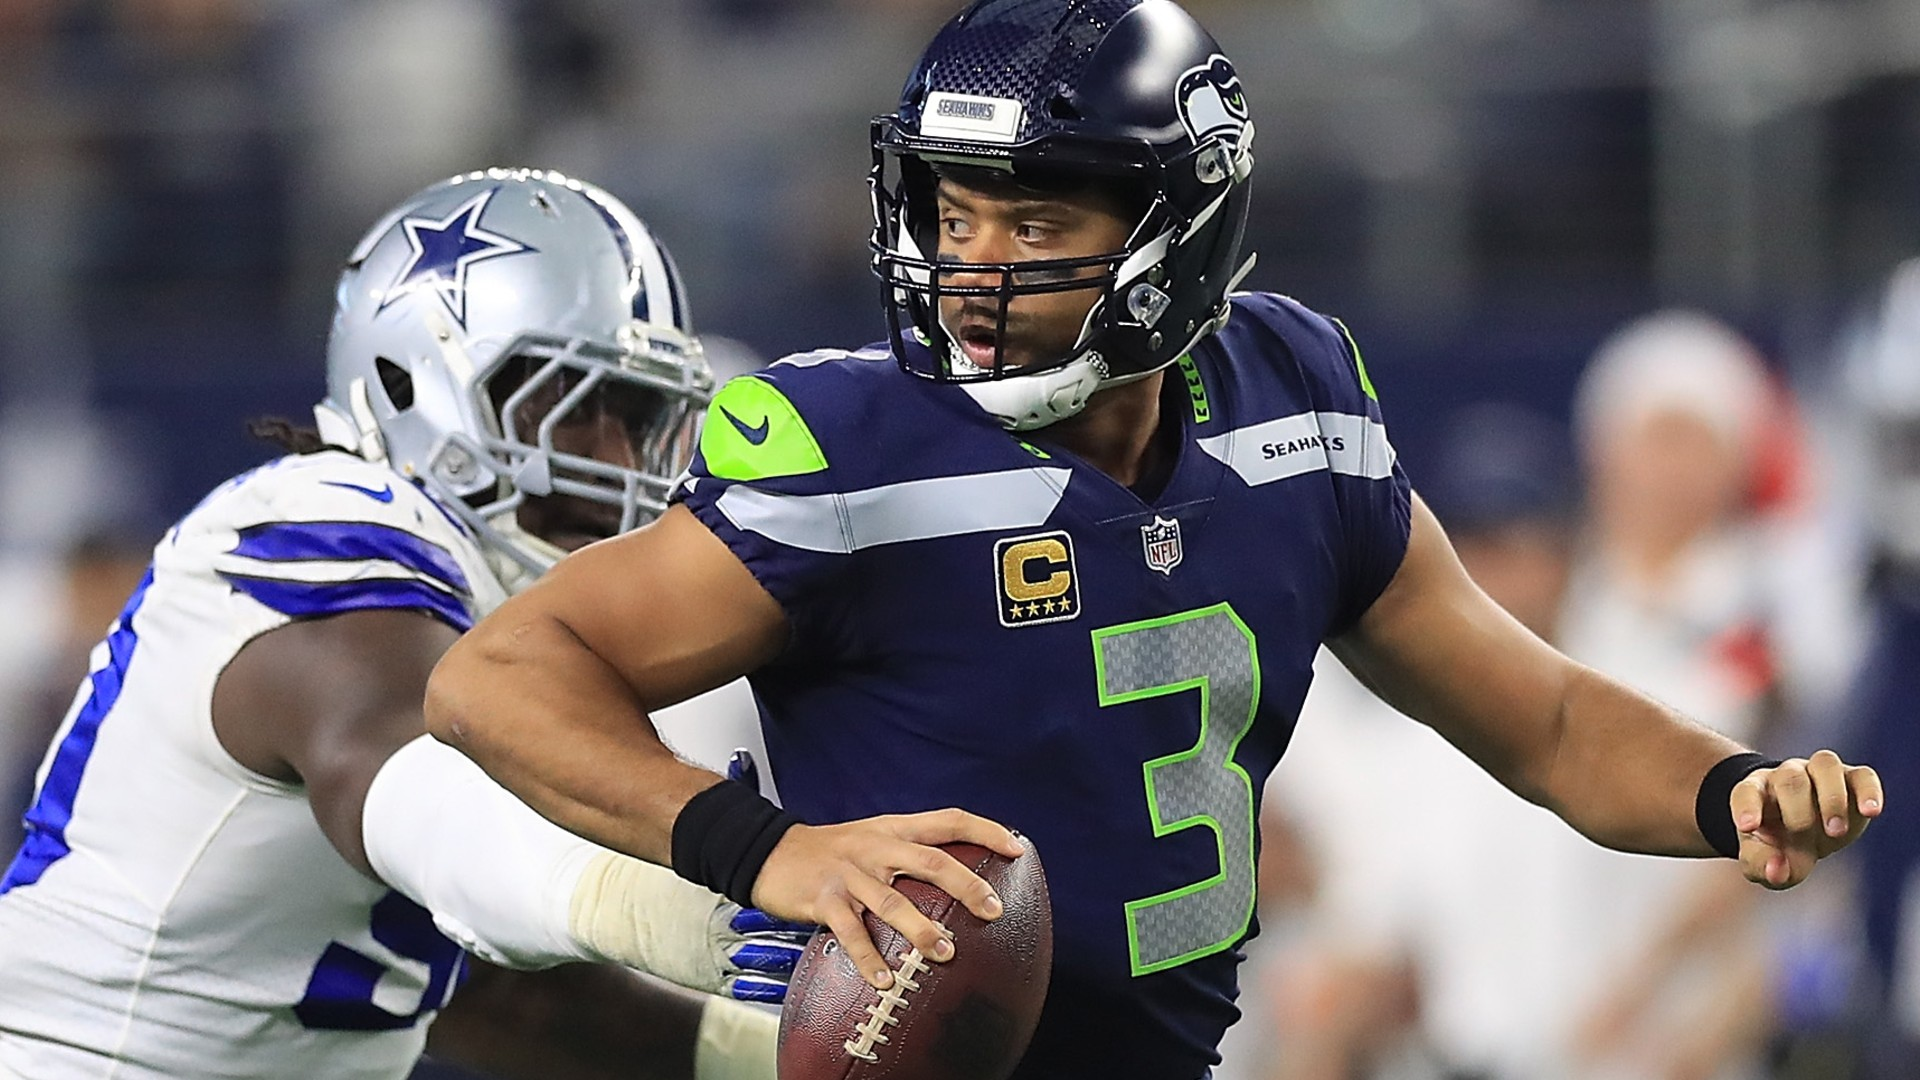 NFL schedule this week: Full Week 5 TV coverage, channels, scores for every football game